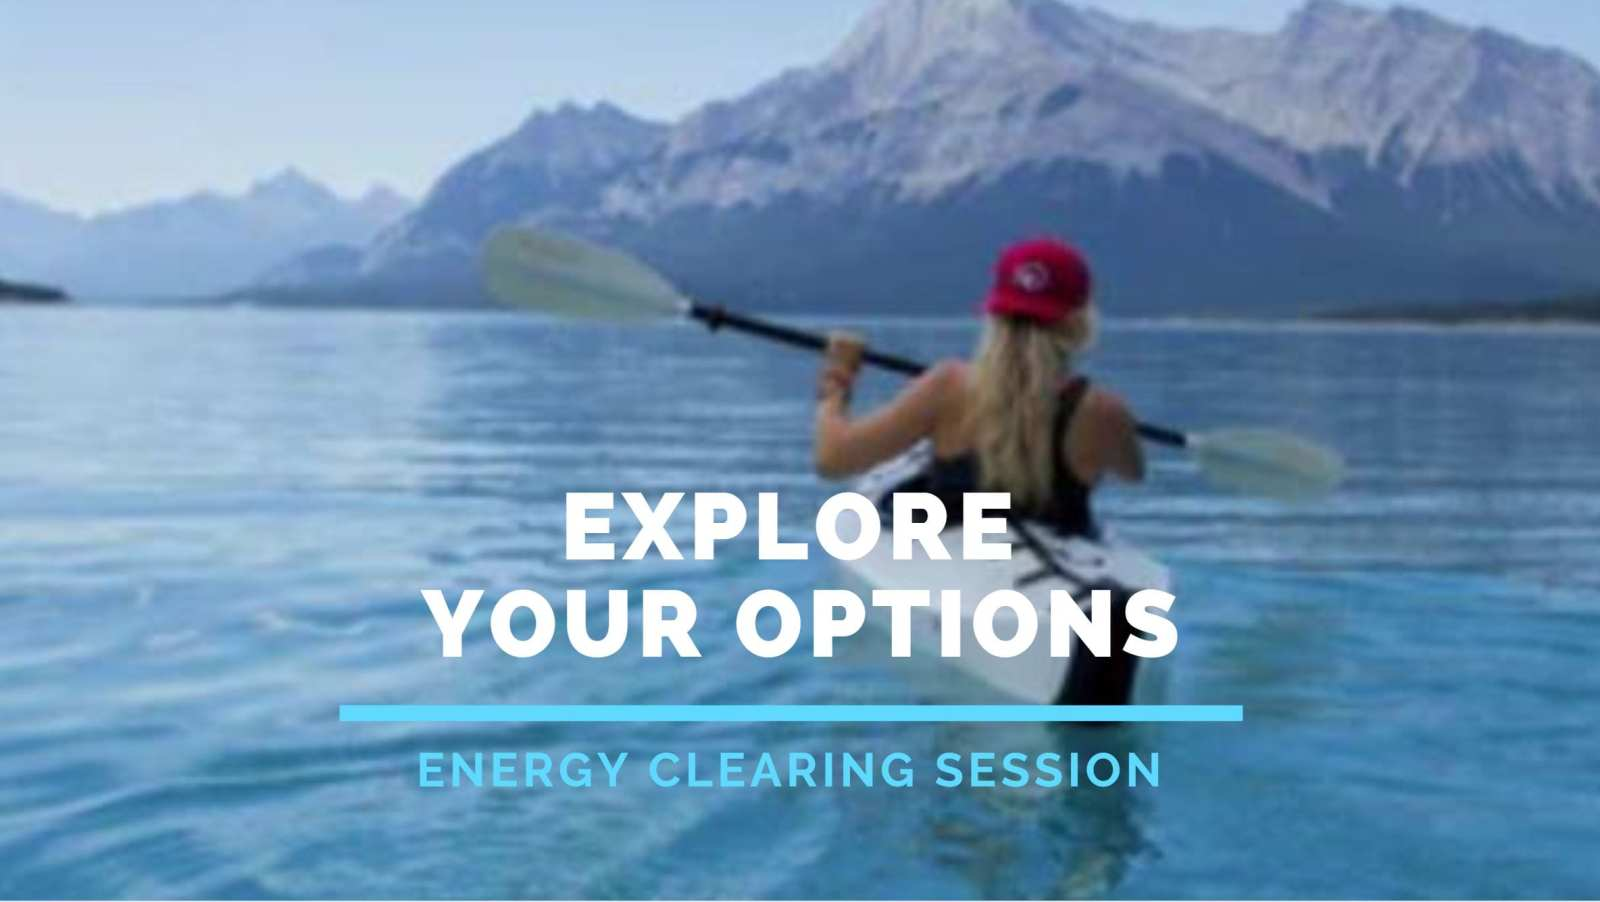 Energy Clearing for More Options